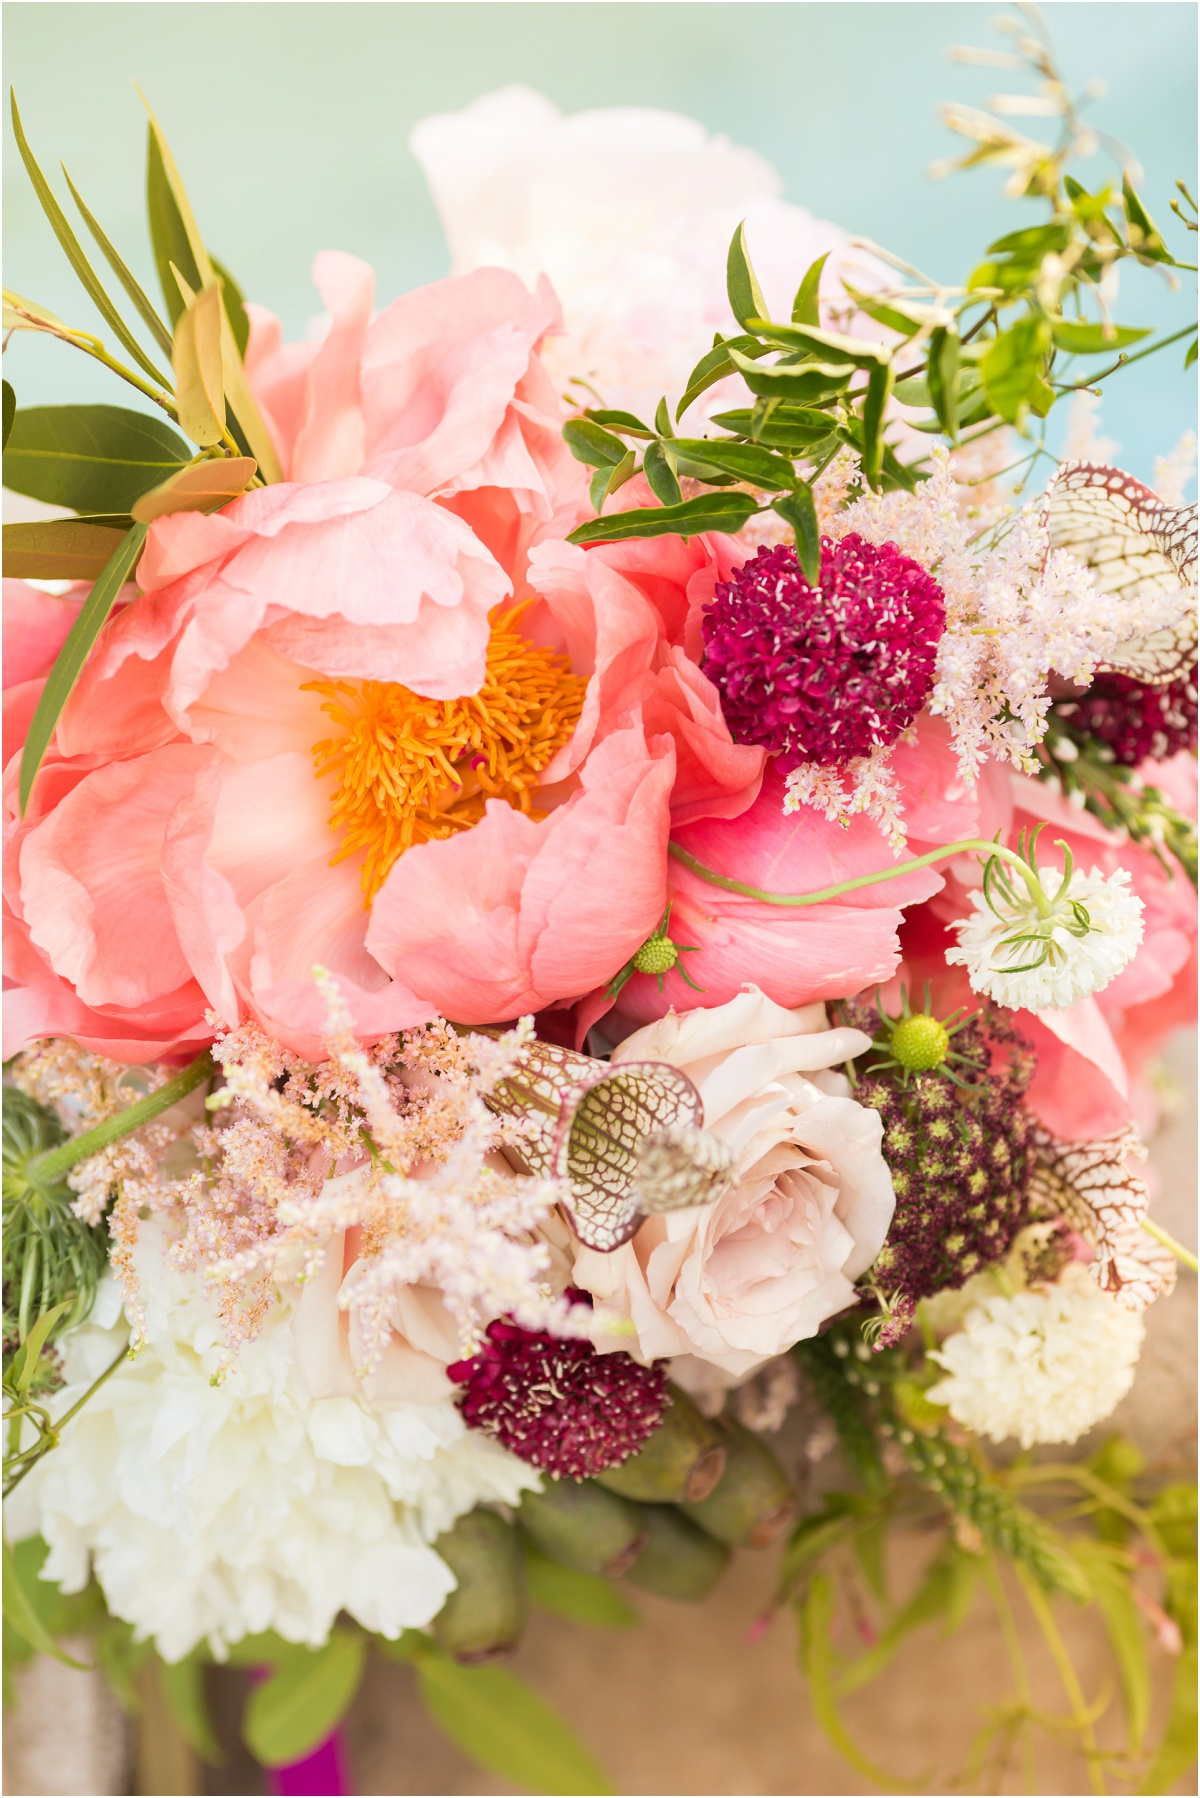 Say YAY! to which bouquet? | Thanksgiving Point Florist Linda Winnie ...